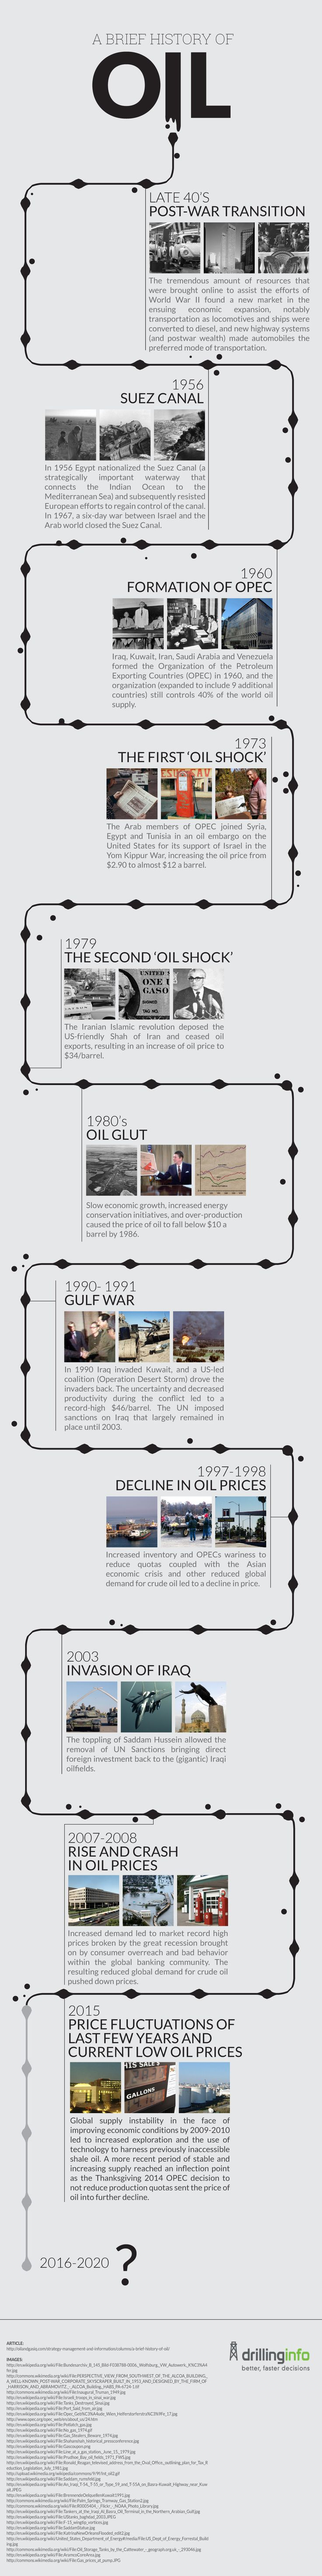 A Brief History of Oil [Infographic] - Oilpro